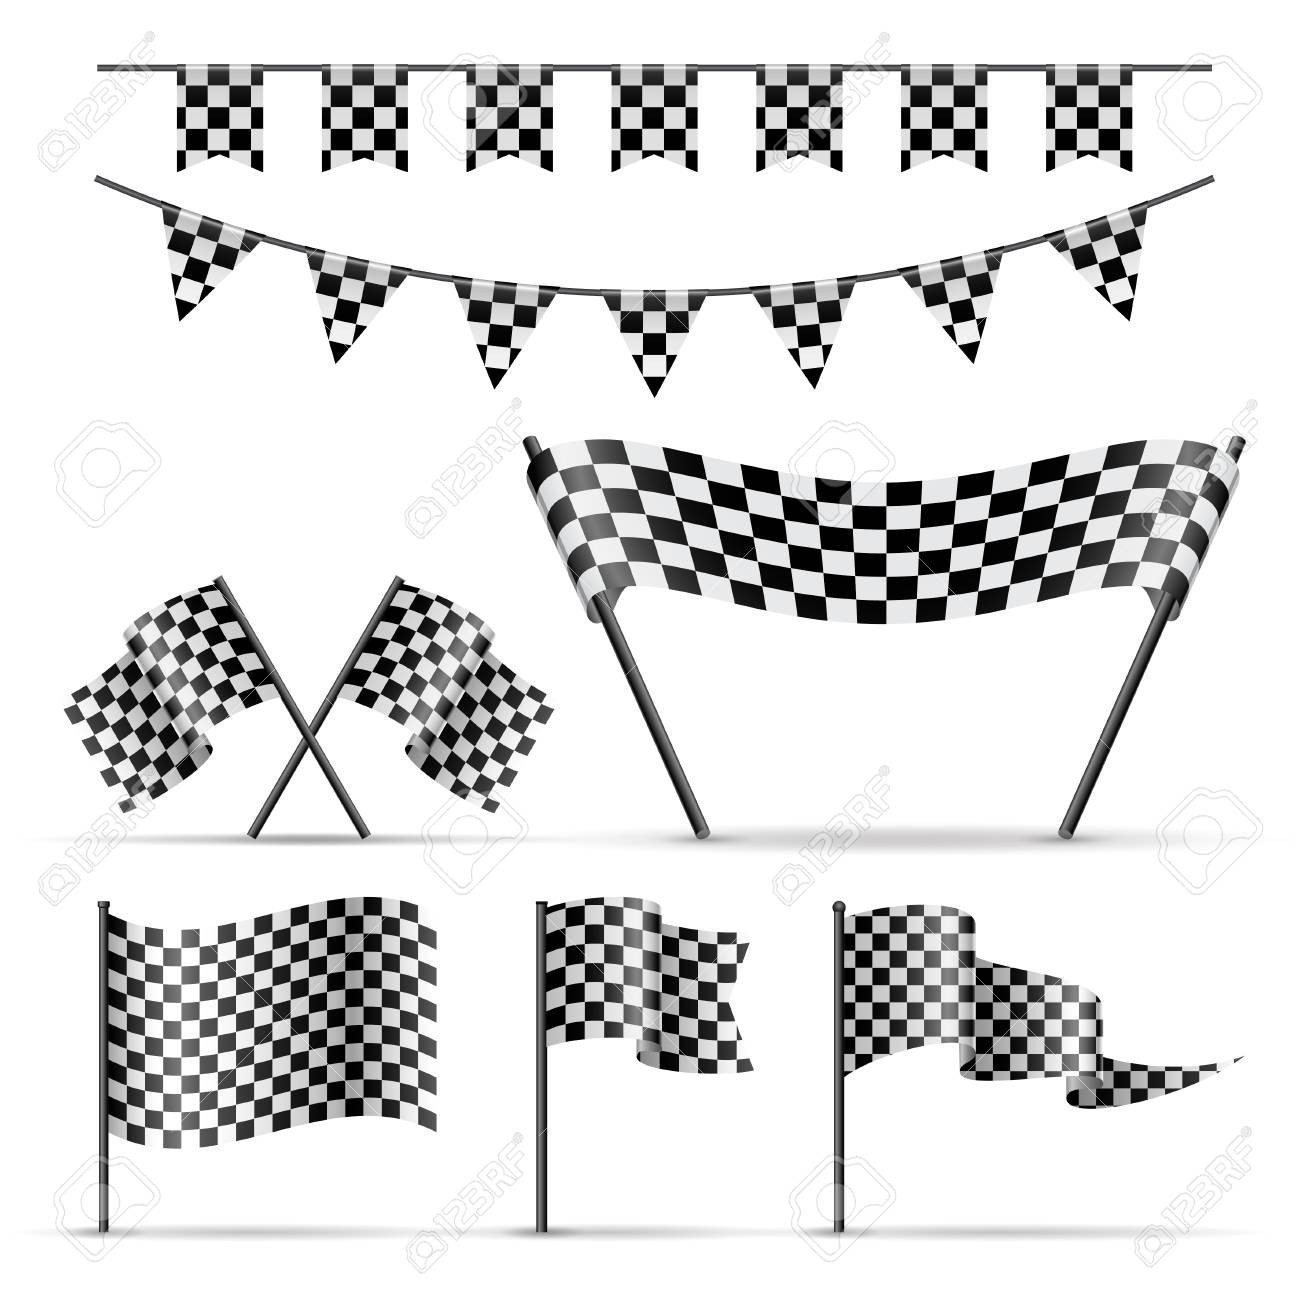 Set Of Sport Checkered Flags And Banner On White Background Royalty Free Cliparts Vectors And Stock Illustration Image 77737078